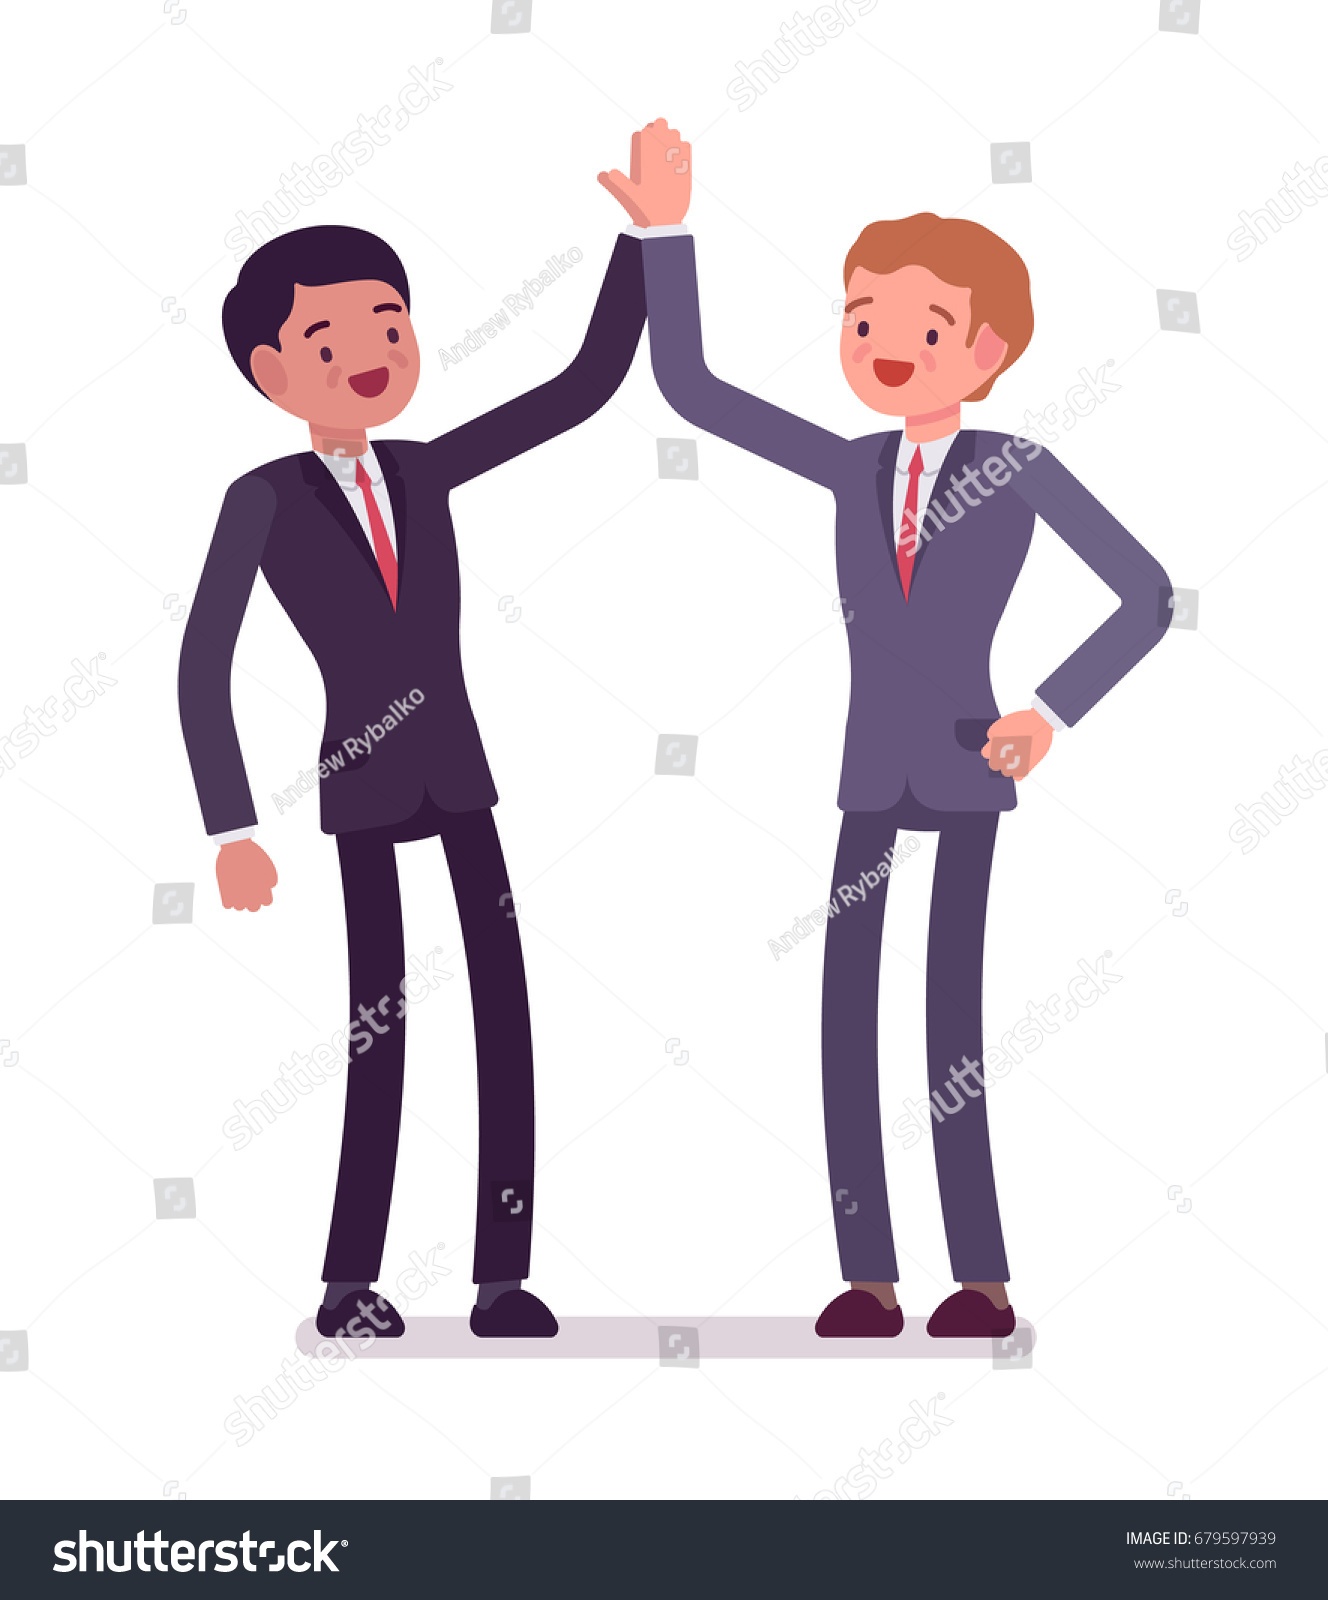 Business partners giving high five men stock vector royalty free business partners giving high five men hearty greeting each other celebrate victory mutual m4hsunfo